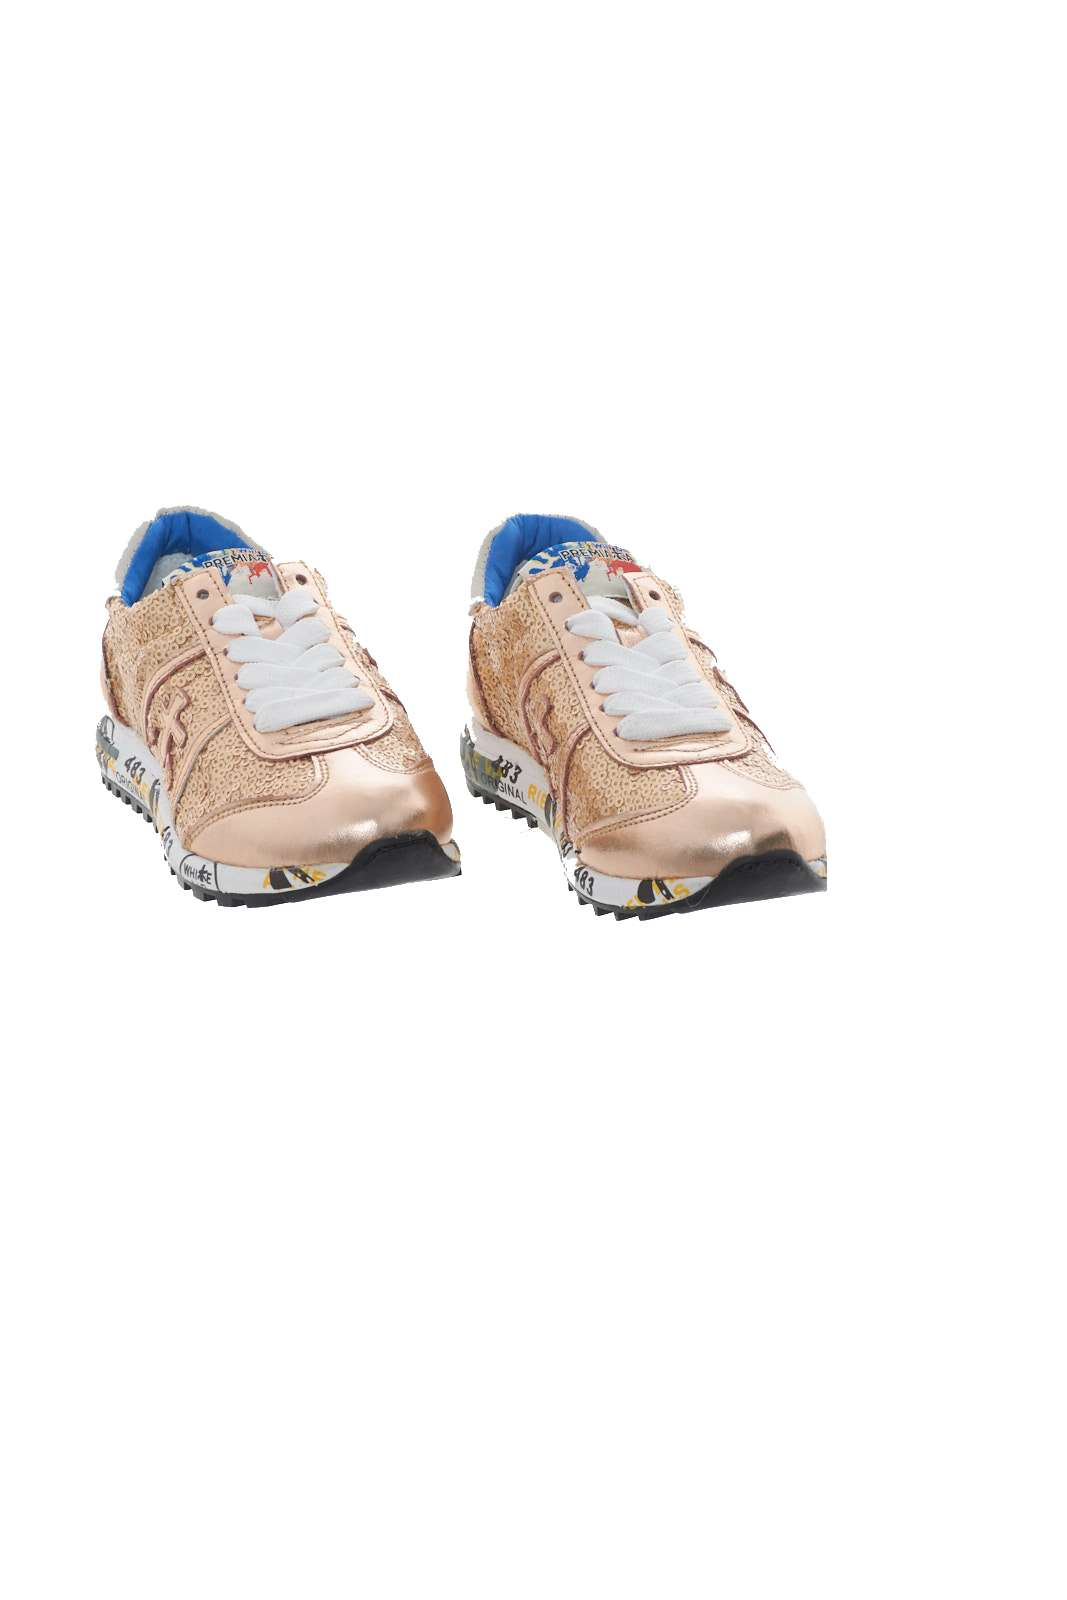 https://www.parmax.com/media/catalog/product/A/I/AI-outlet_parmax-sneaker-bambina-Will-be-Premiata-lucy-B_1.jpg